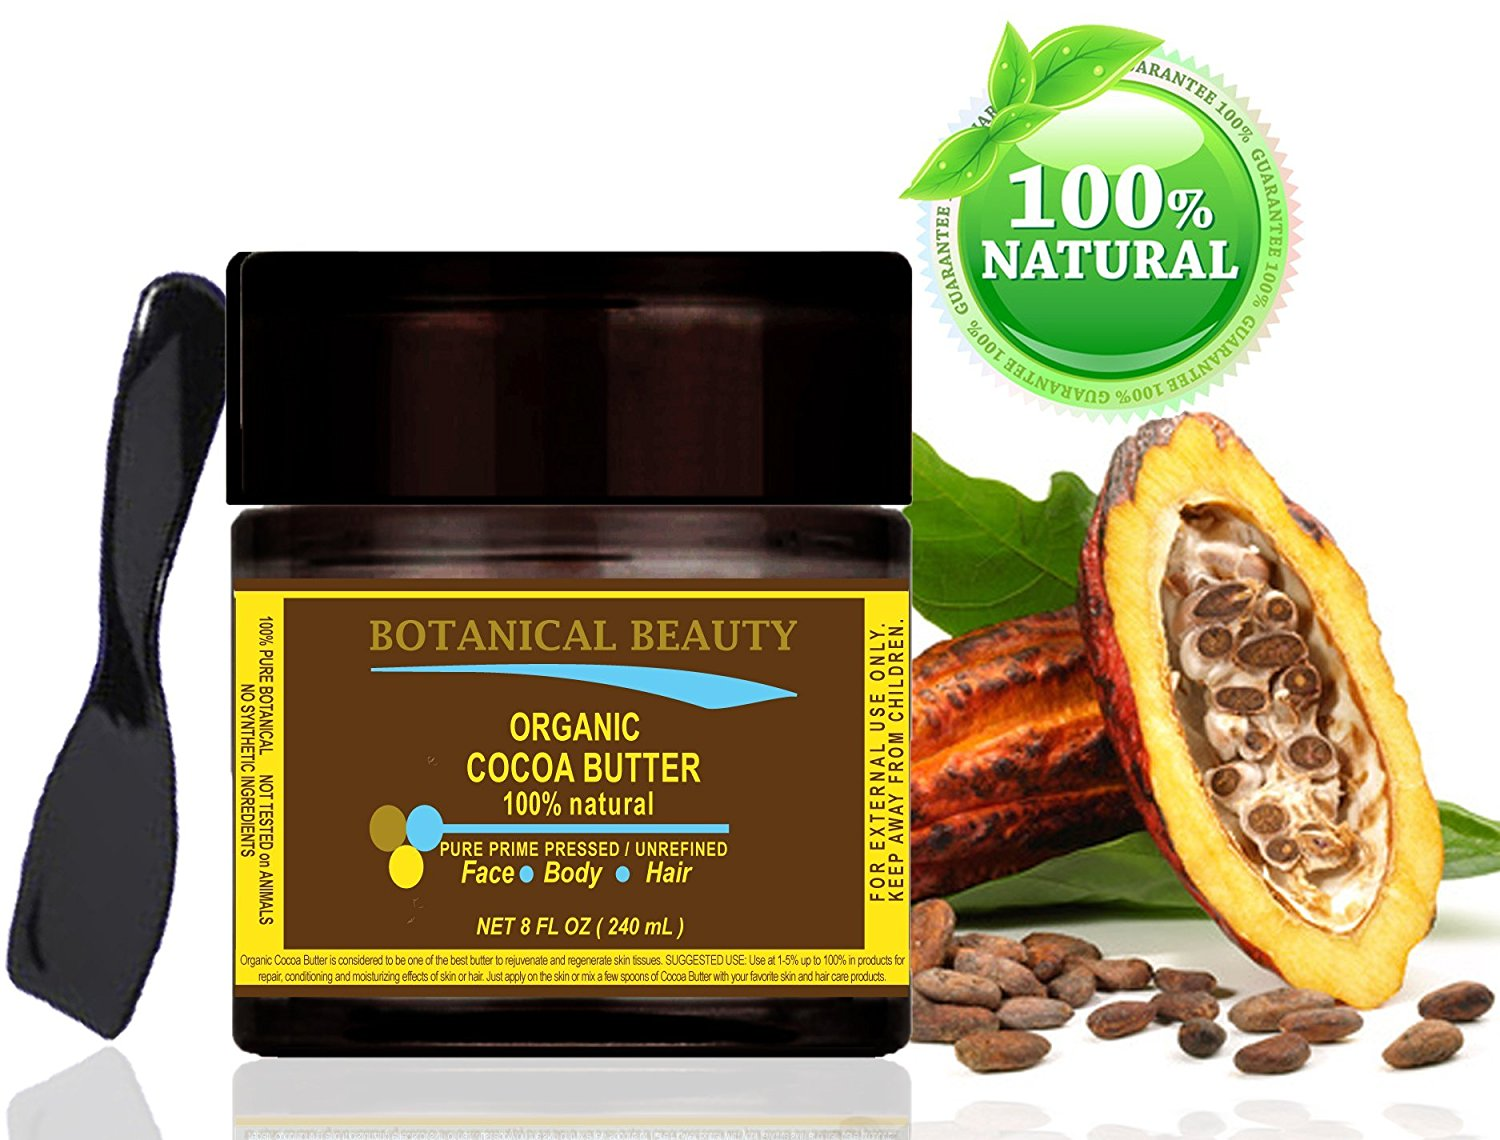 "ORGANIC COCOA BUTTER 100 % Natural / Pure Prime Pressed / Unrefined / Grade A / Certified Organic. 8 Fl.oz.- 240 ml. For Skin, Hair and Nail Care. ""Organic Cocoa Butter has the most remarkable cosmetic effect on the skin and hair."" Organic Cocoa Butter has a very pleasant chocolate aroma. by"